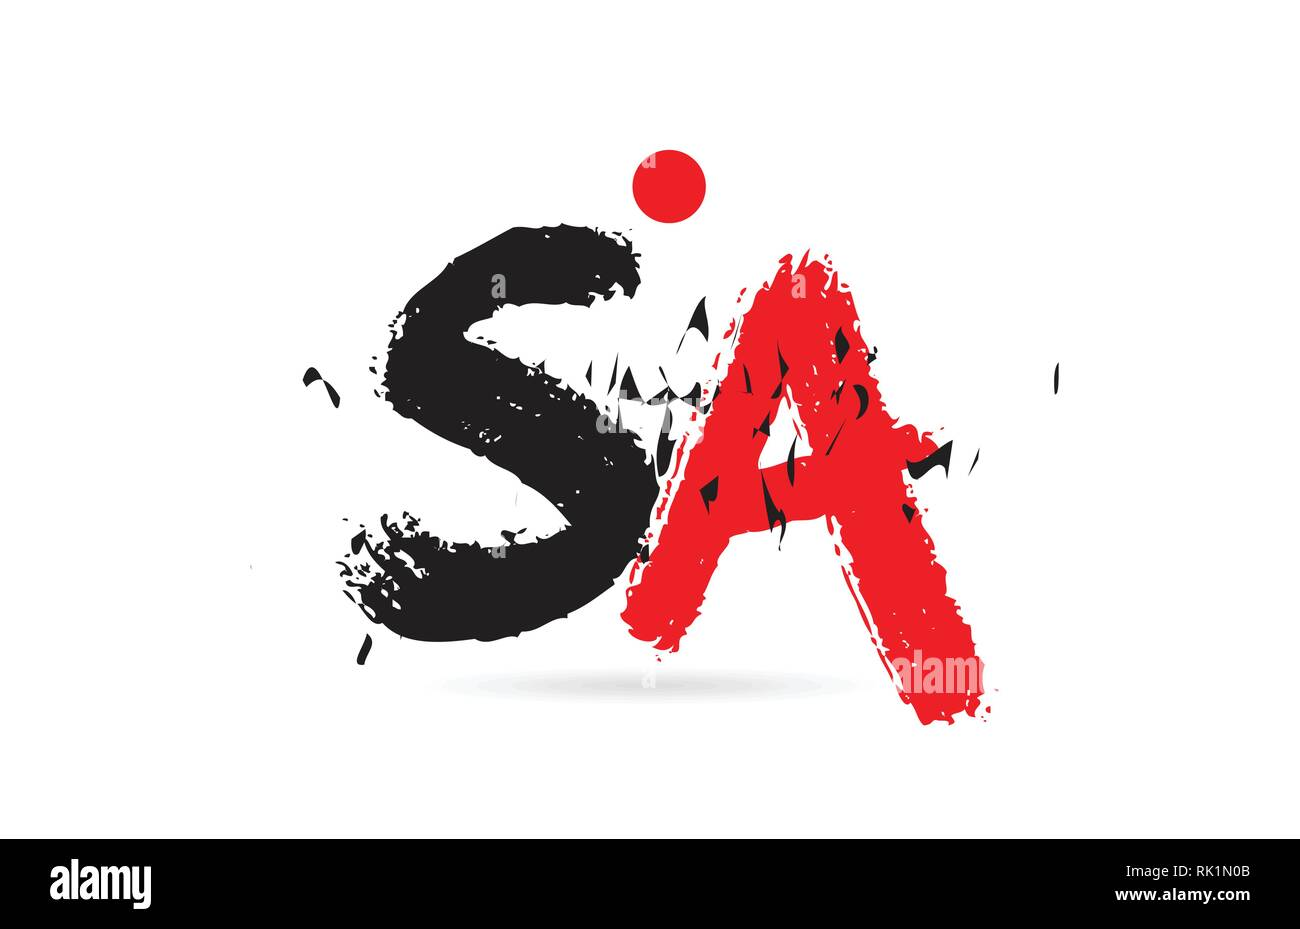 Design of alphabet letter combination SA S A with grunge texture and black red color suitable as a logo for a company or business - Stock Vector